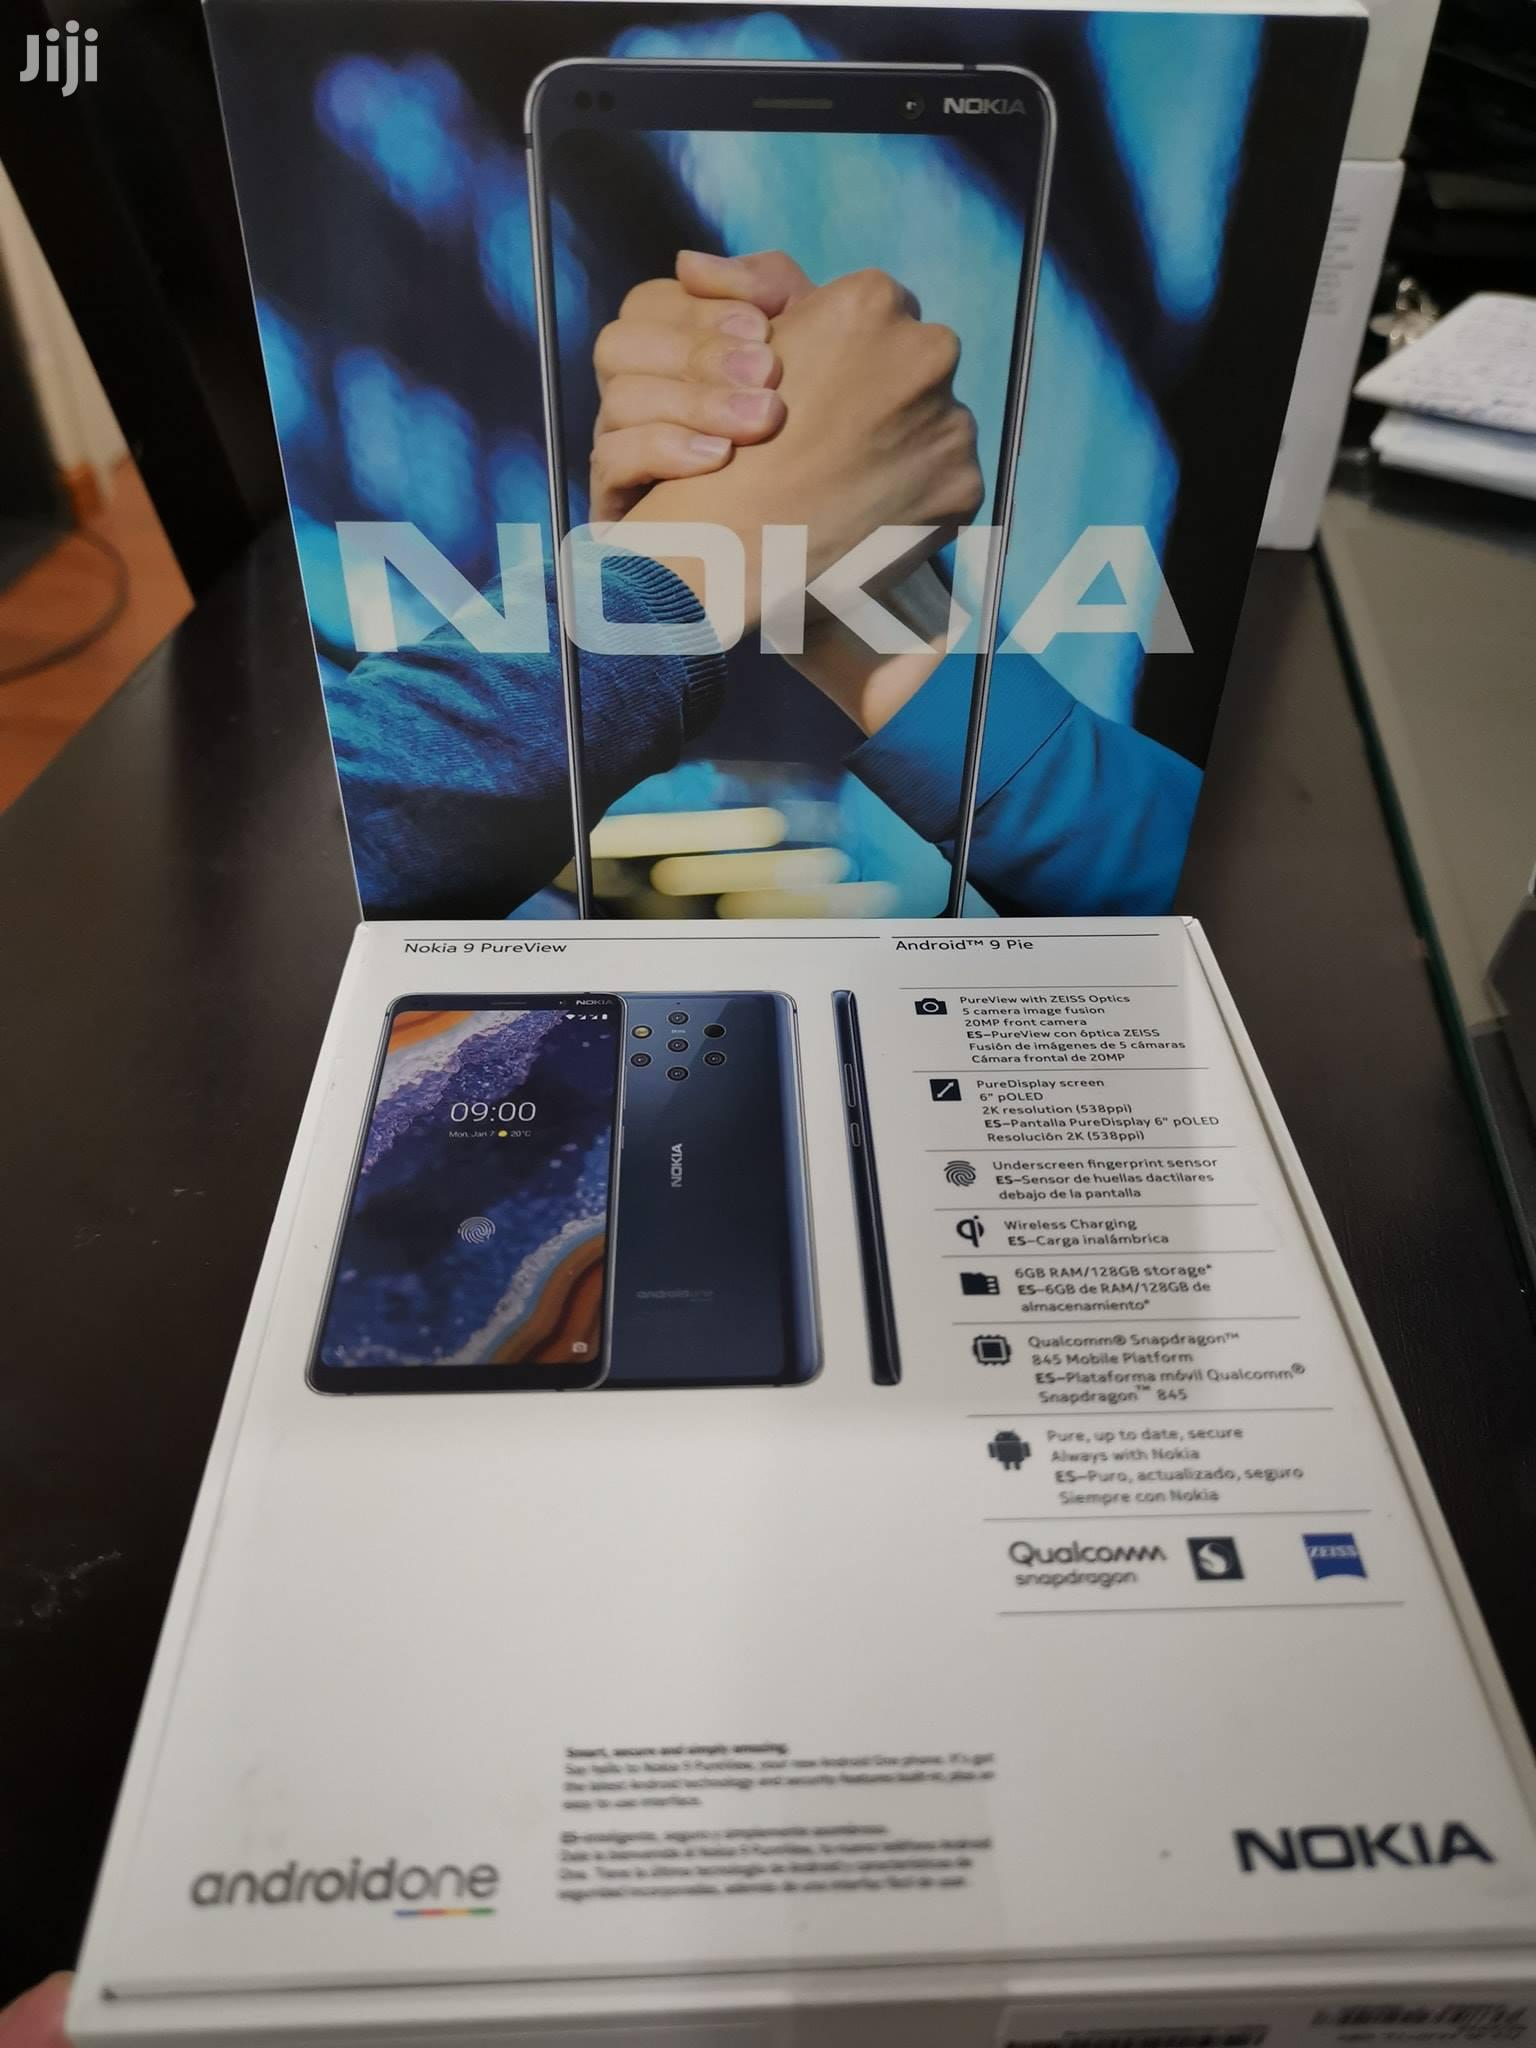 Archive: New Nokia 808 PureView 128 GB Black